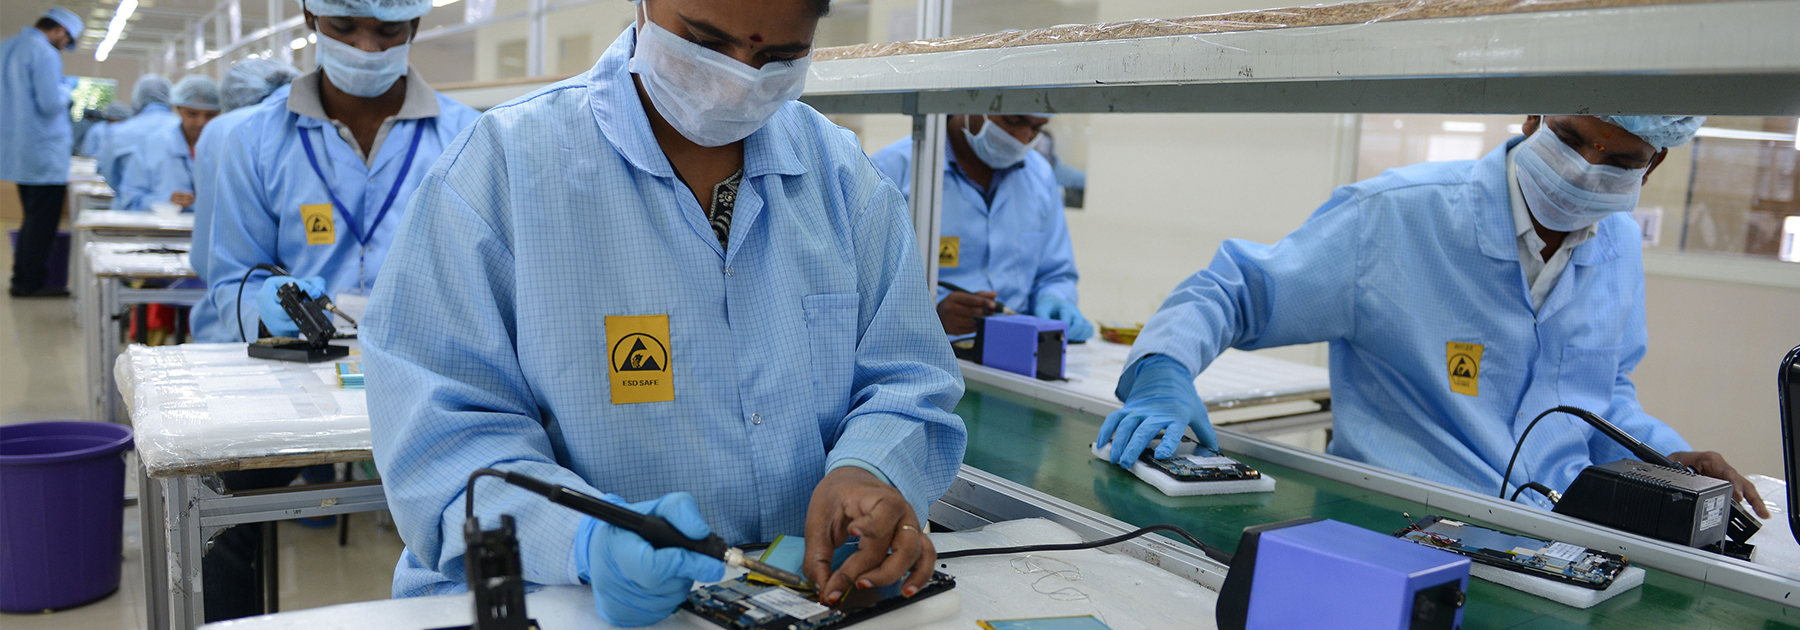 Indian technicians work on tablet computers at Canadian company Datawind Manufacturing plant. (NOAH SEELAM/AFP/Getty Images)